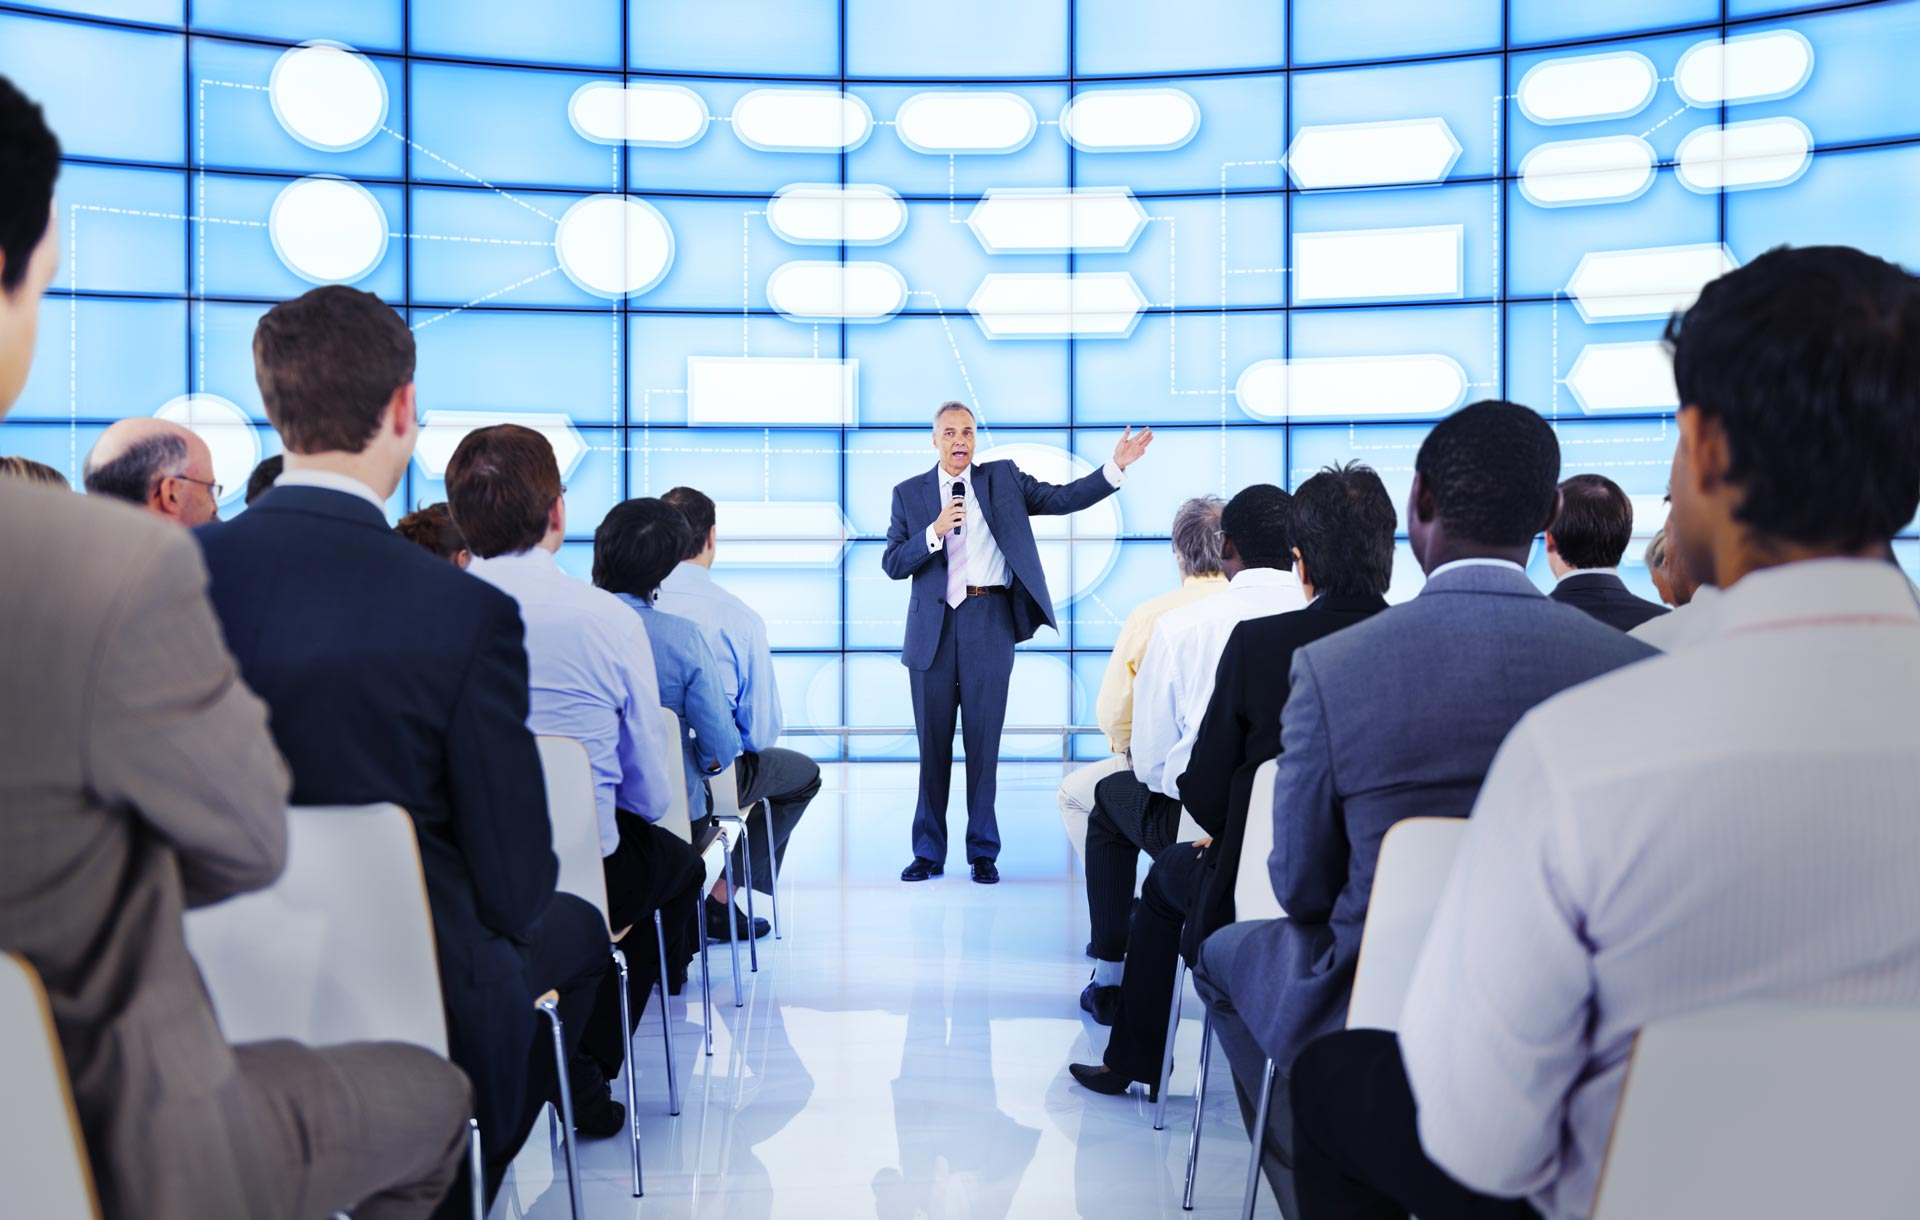 5 Ways To Improve Your Public Speaking This Year